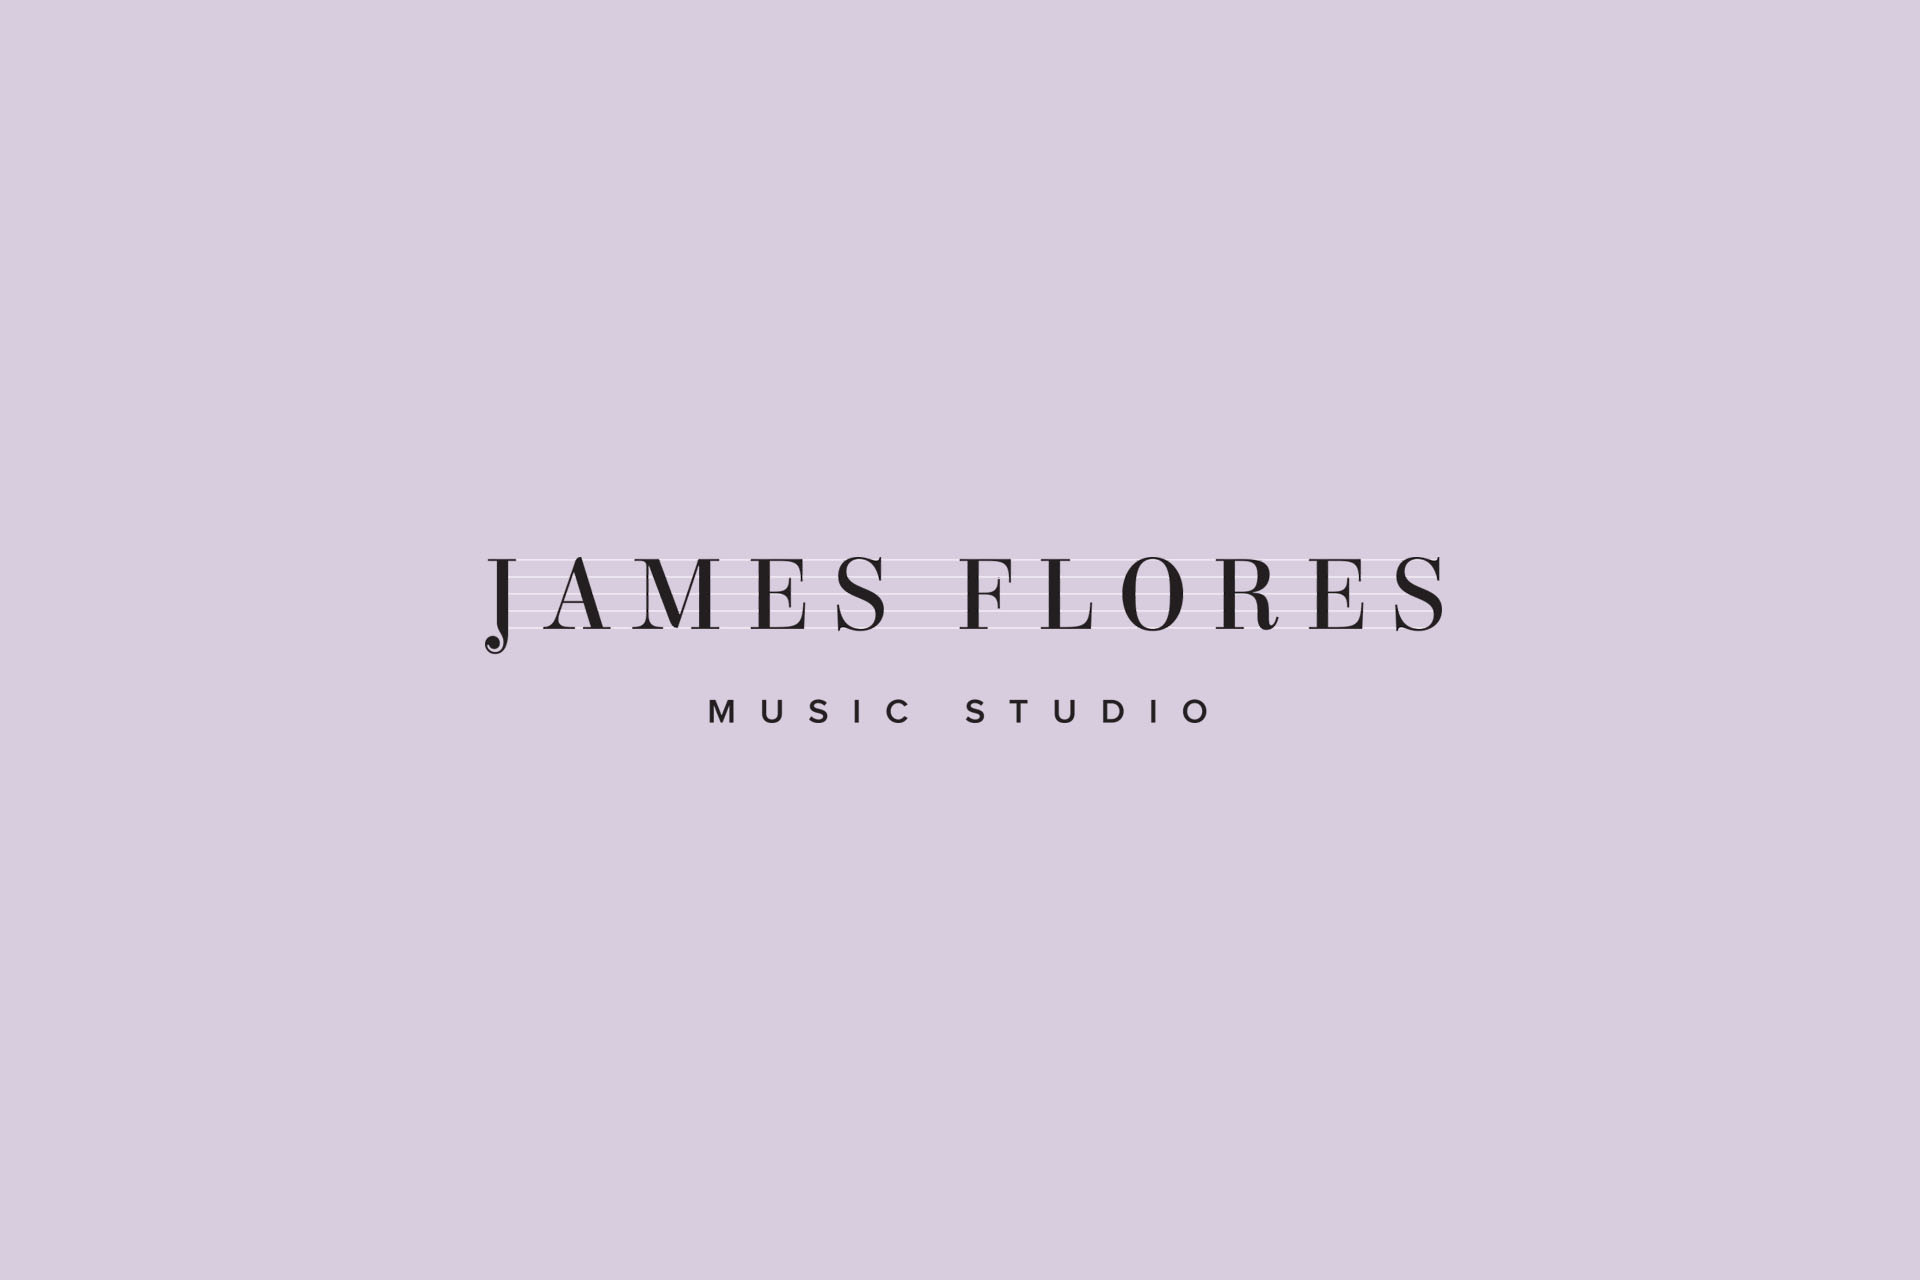 James Flores Music Studio branding by Leysa Flores